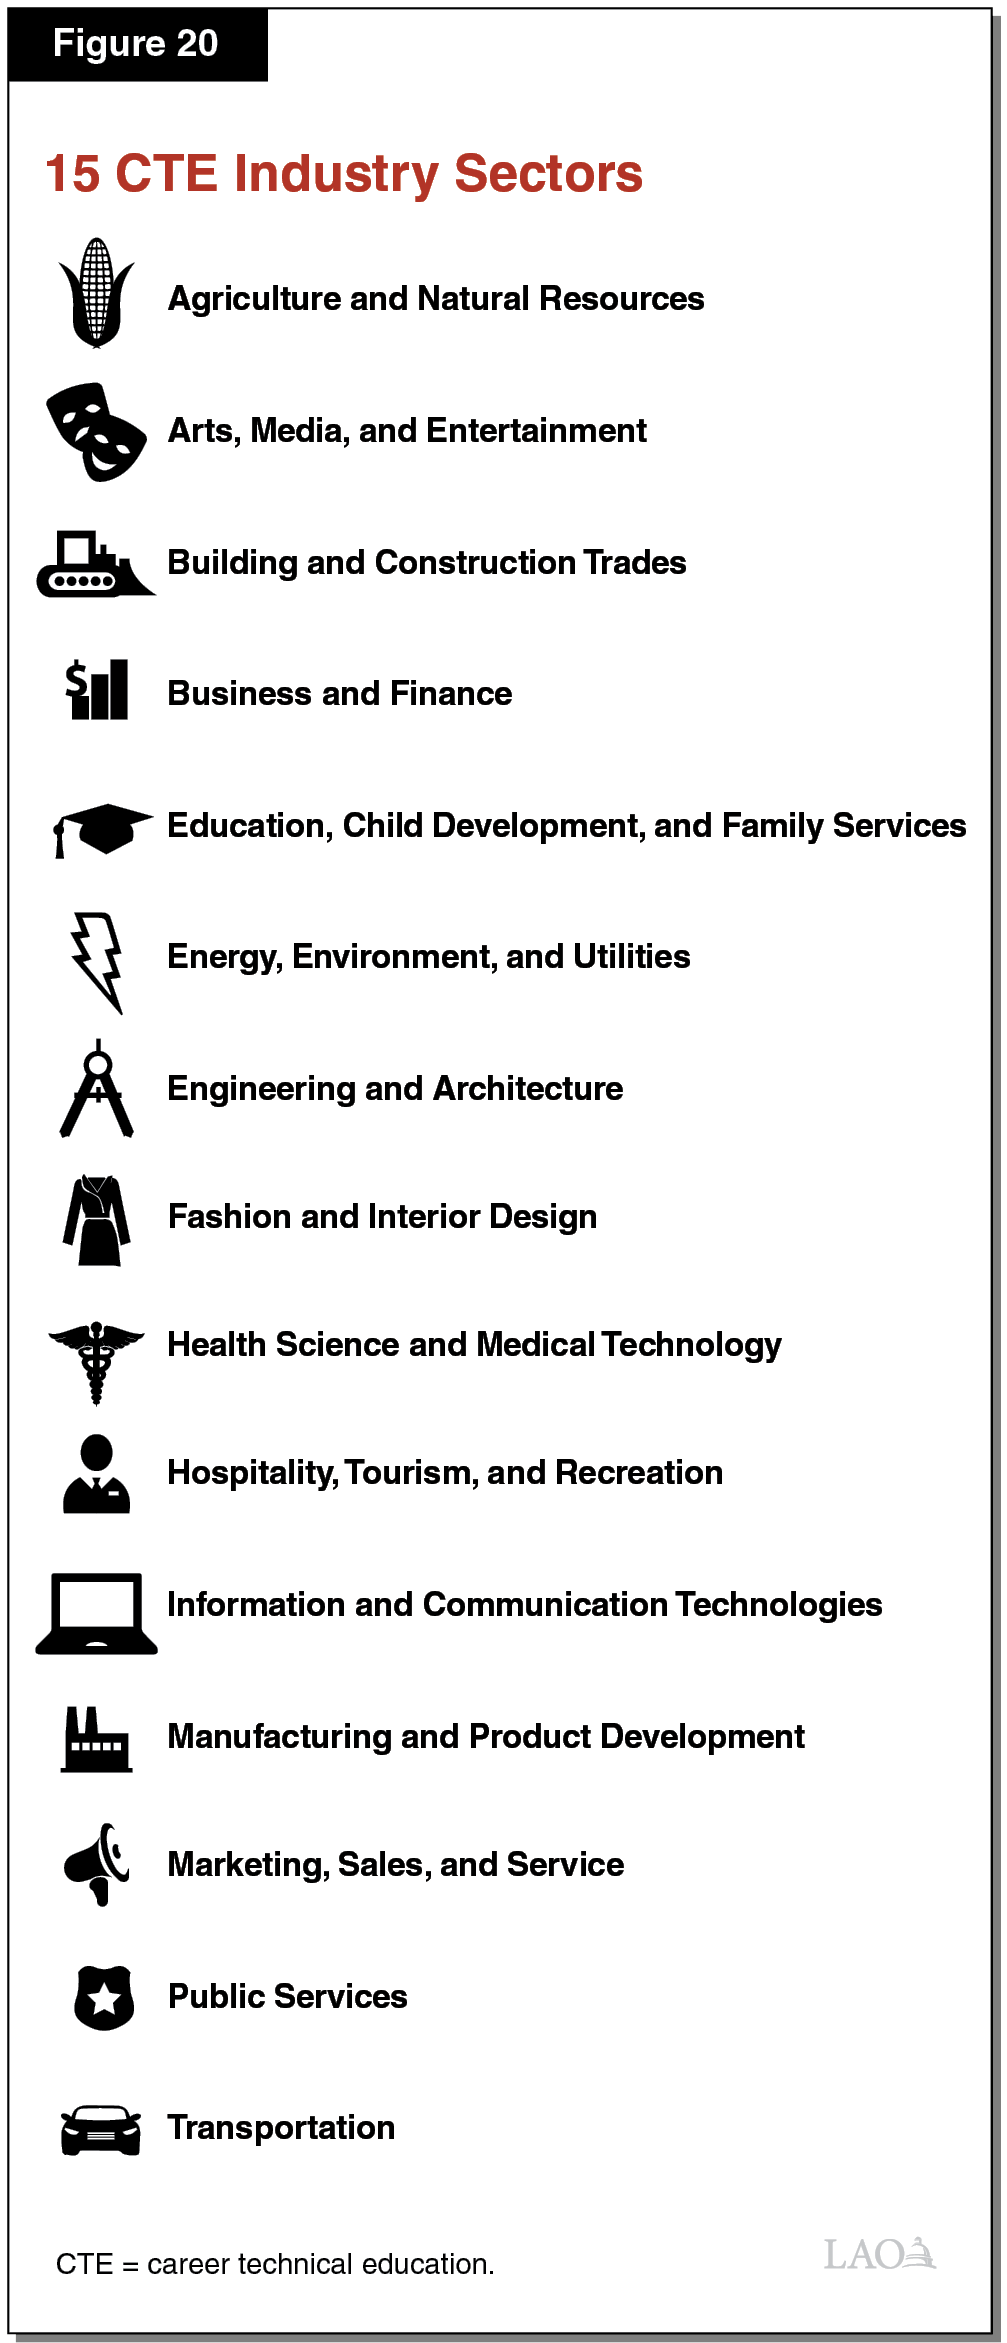 Figure 20 - 15 CTE Industry Sectors